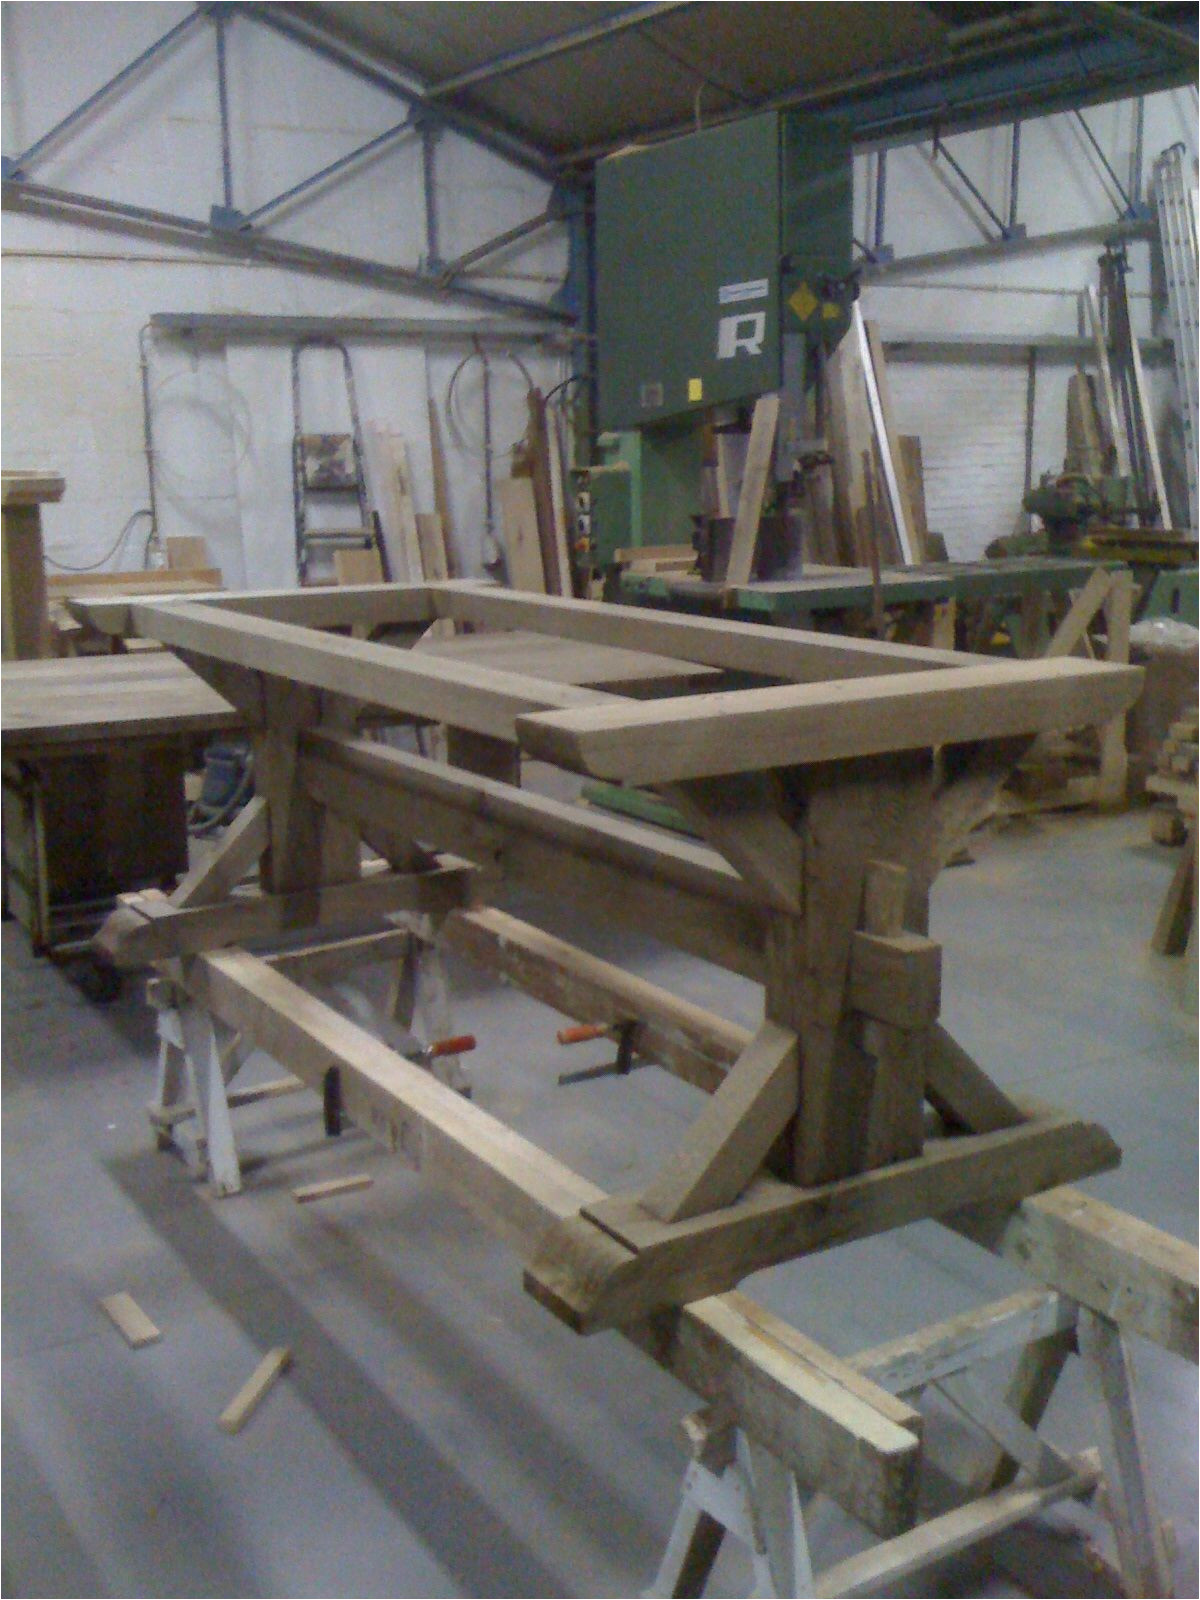 Wood Trestle Table Base Kits Nearly Done Piere Trestle Table Farm